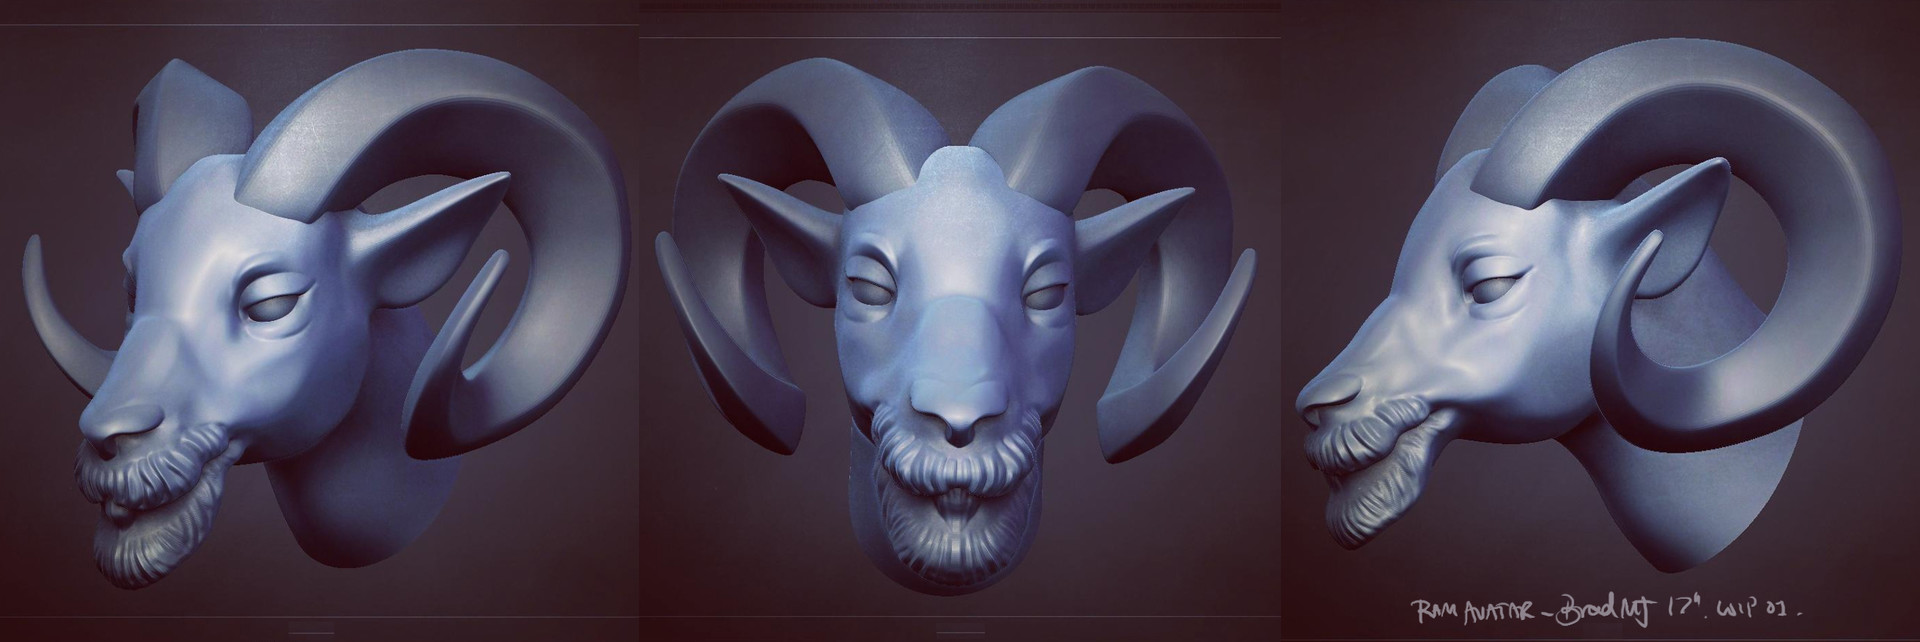 Bradley morgan johnson sculpt wip 1 insta